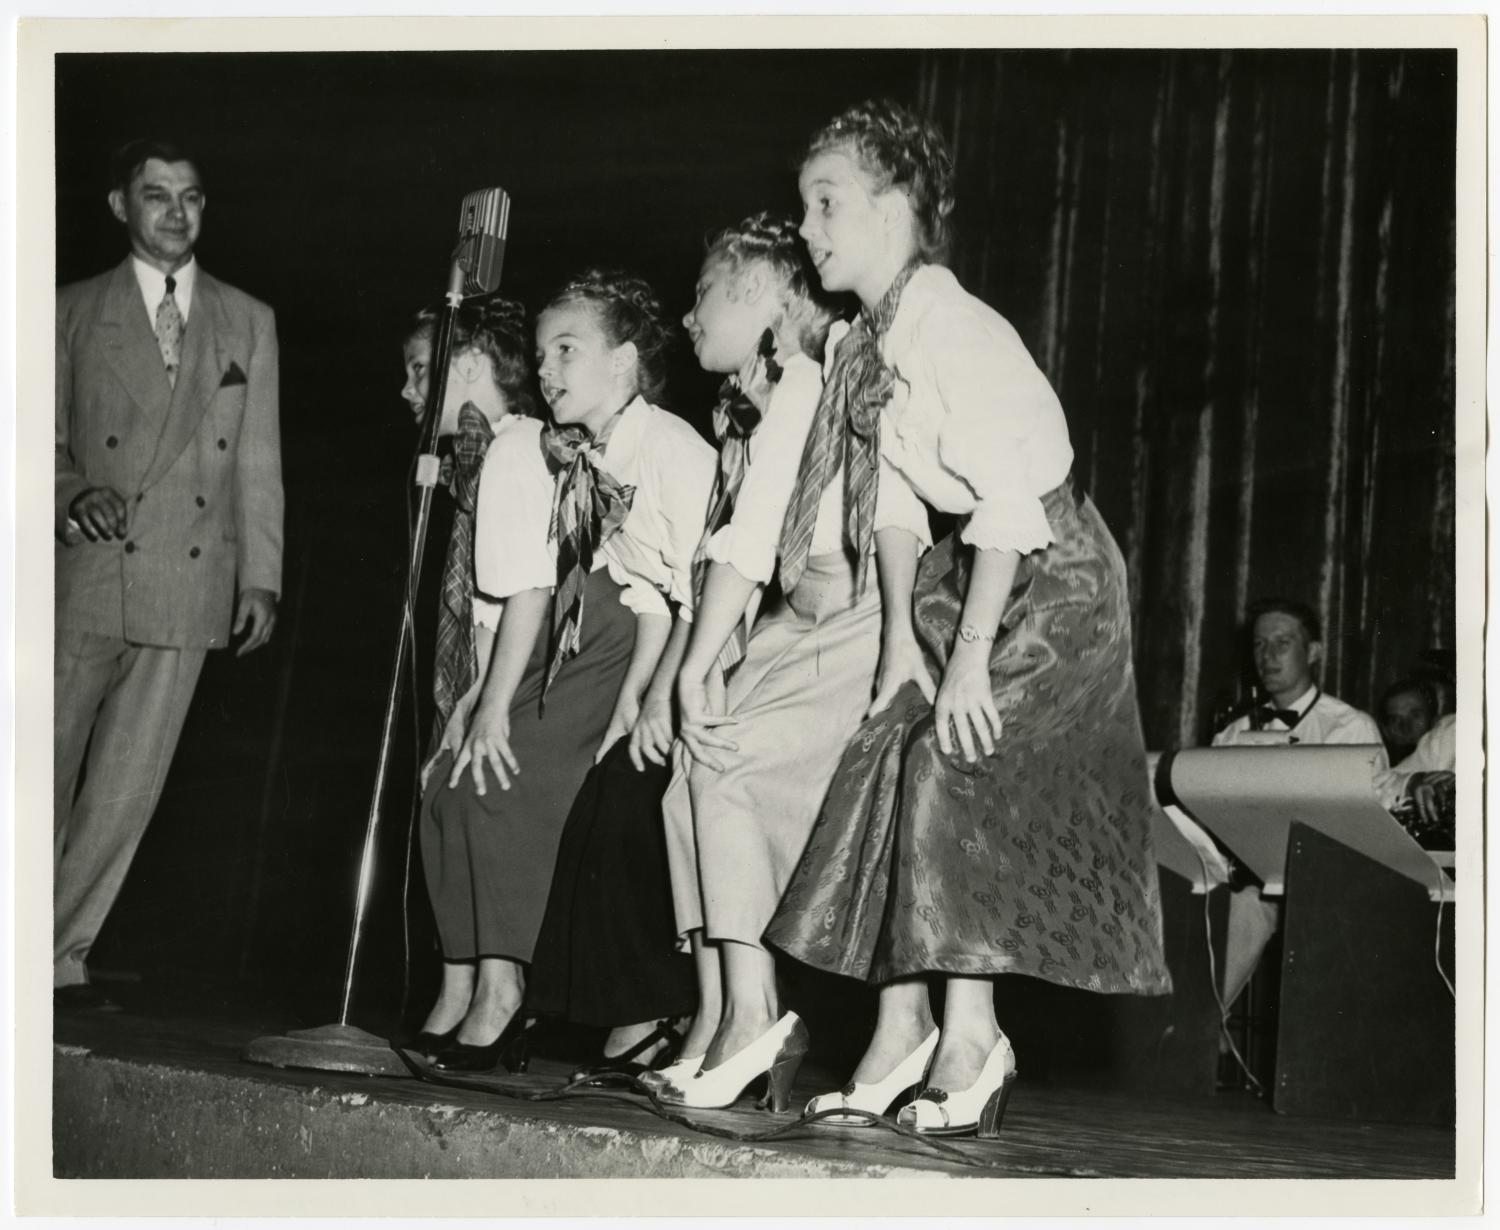 Black and white photo of four young girls dressed in long skirts and heels, singing into a single microphone on a stand. Members of a band can be seen behind them, with a man standing to the far left in a suit on stage.